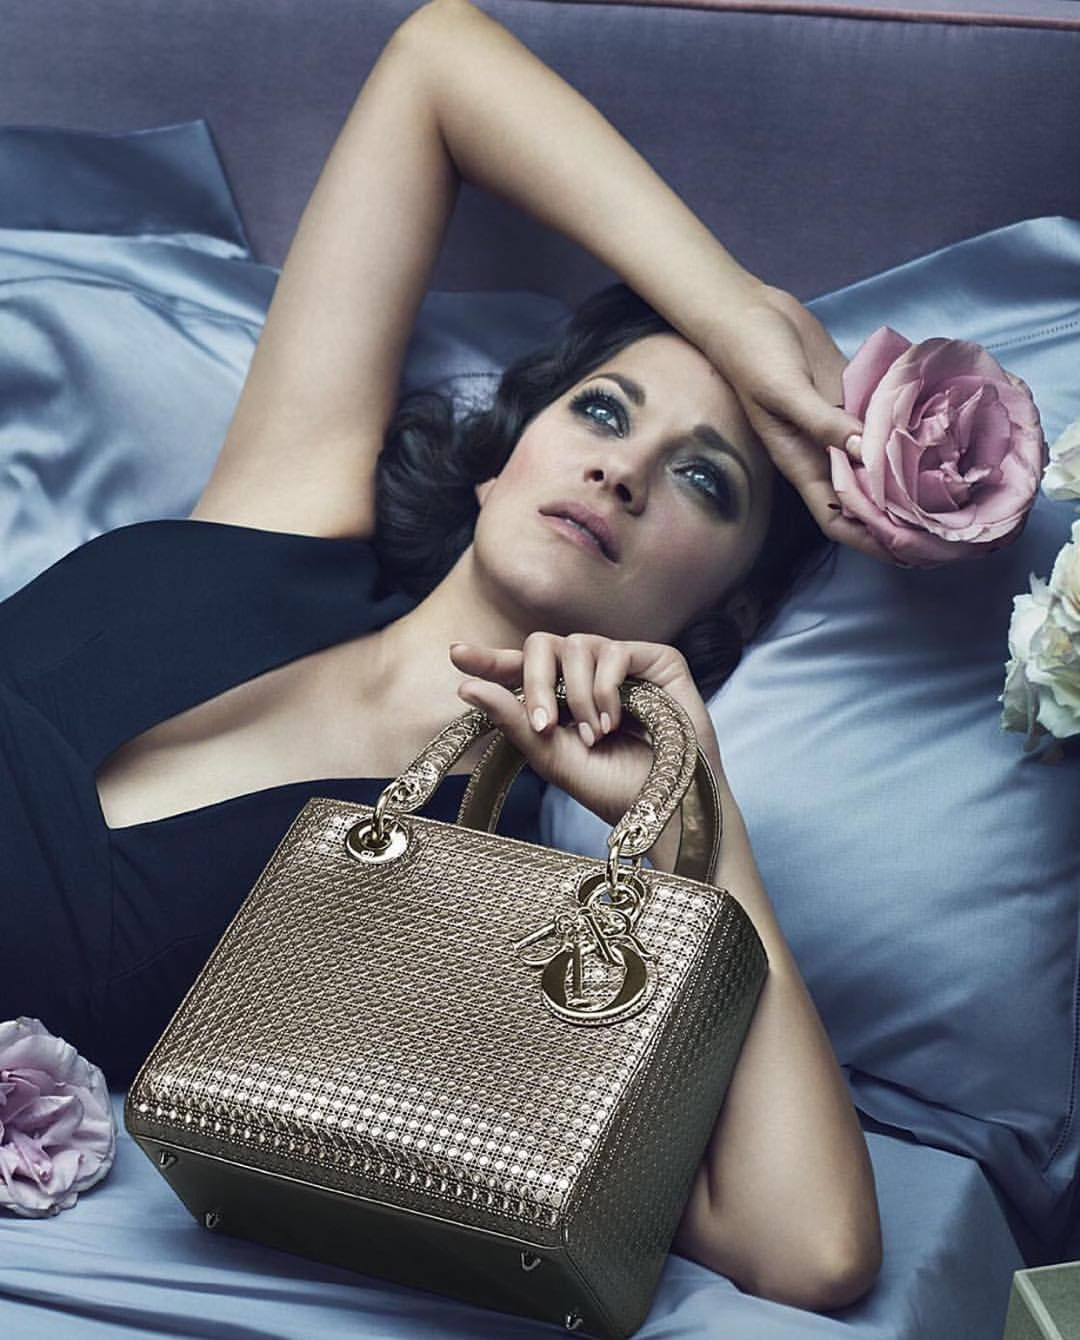 "Harper's BAZAAR Singapore on Instagram: ""Sultry screen siren Marion Cotillard returns as the face of @Dior's 'Lady Dior' campaign, lenses by photographer duo @mertalas and @macpiggott!  #HarpersBazaarSG #itDior"""